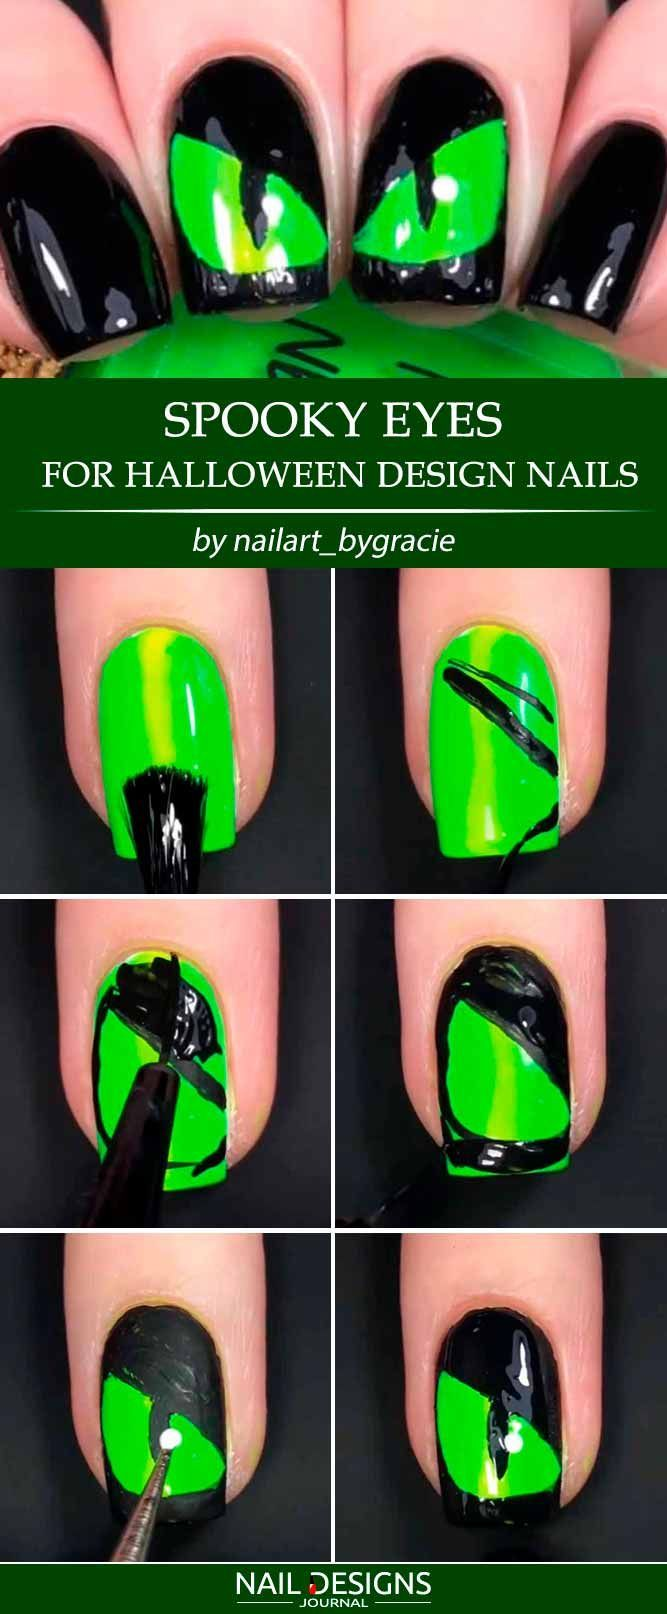 25 creative but easy halloween nails designs you can copy | nail